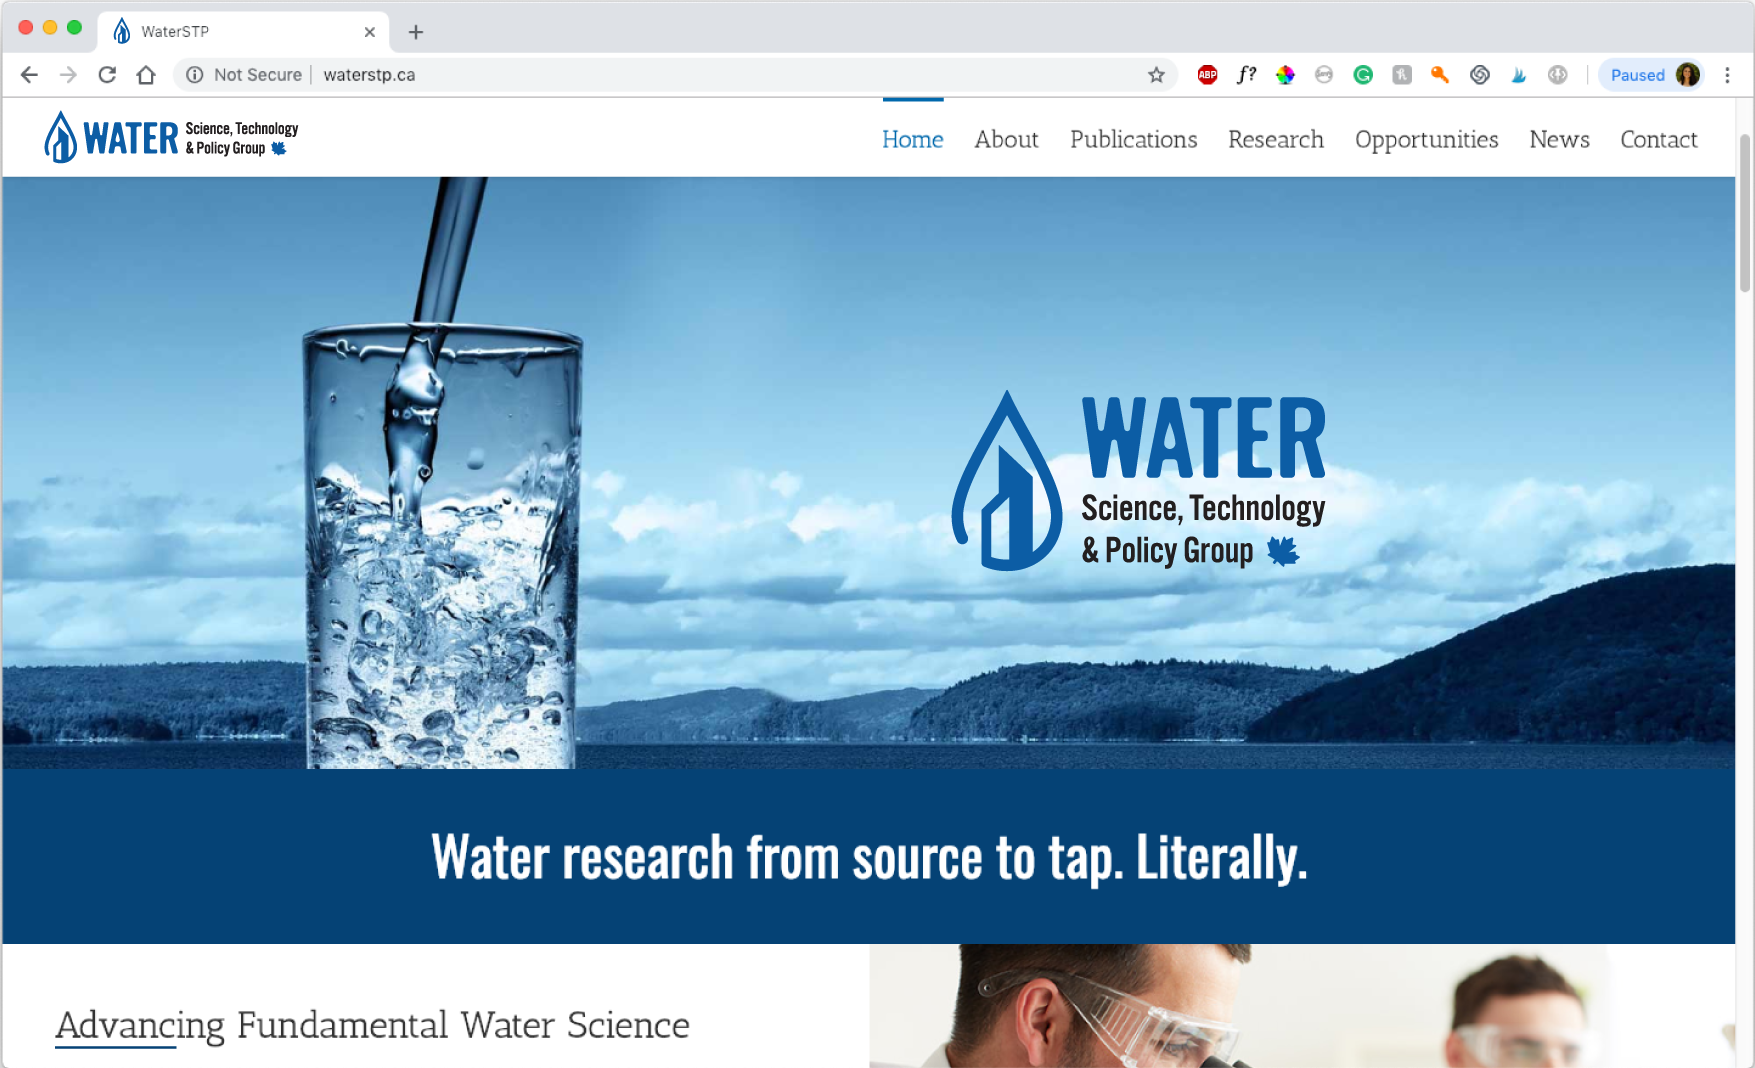 Water technology service for municipalities brand identity logo water drop with buildings website